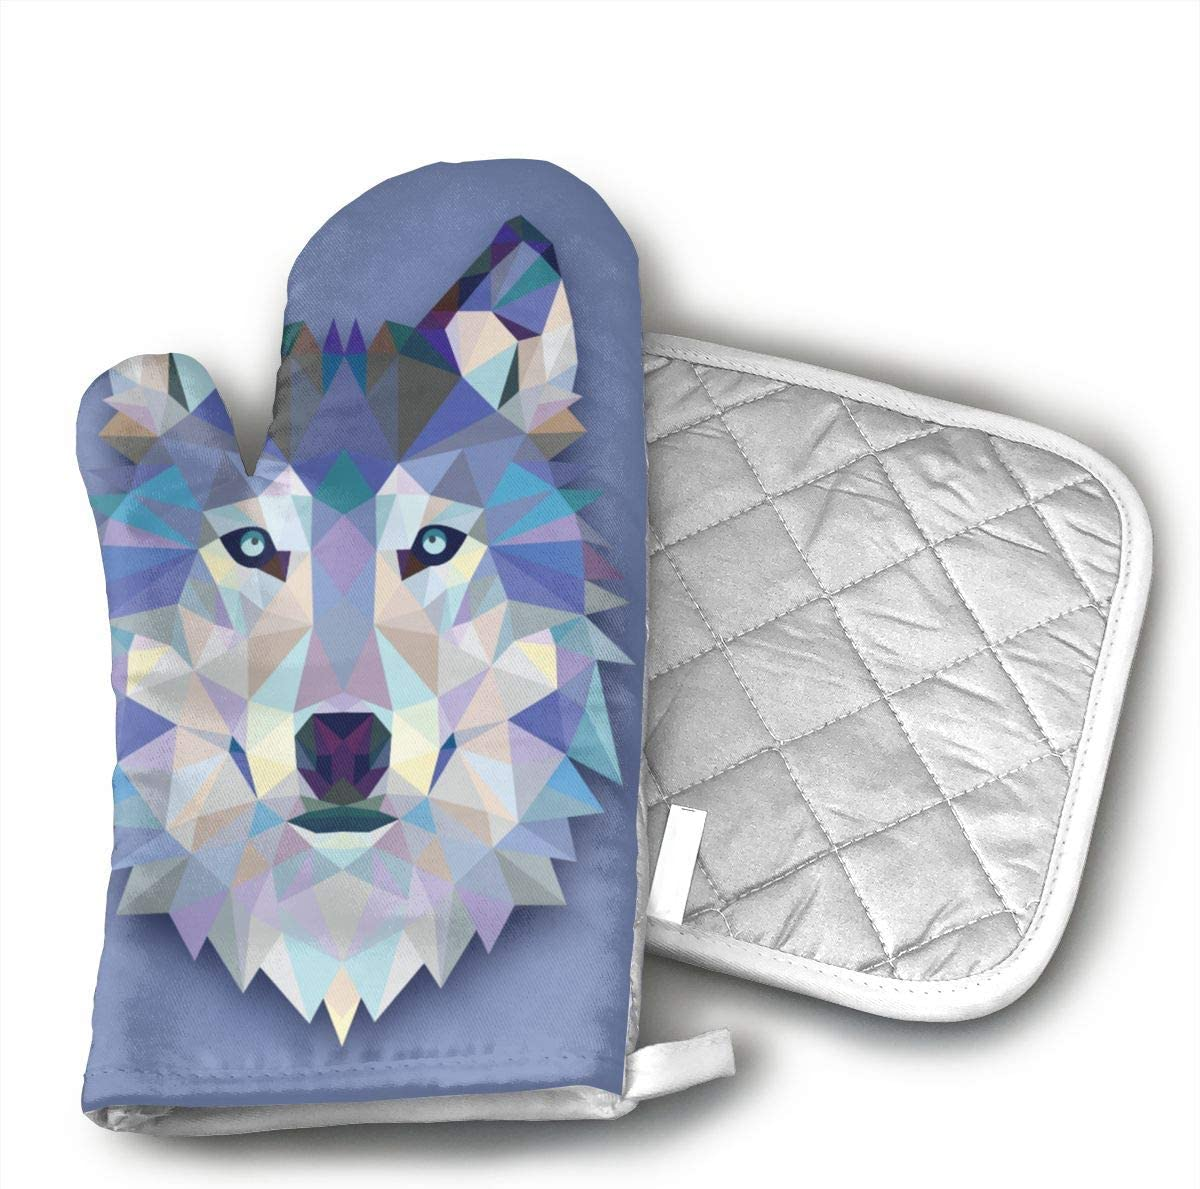 GRSTfsm Wolf Oven Mitts, Cook Mittens Protect Your Hand During Baking Doing BBQ